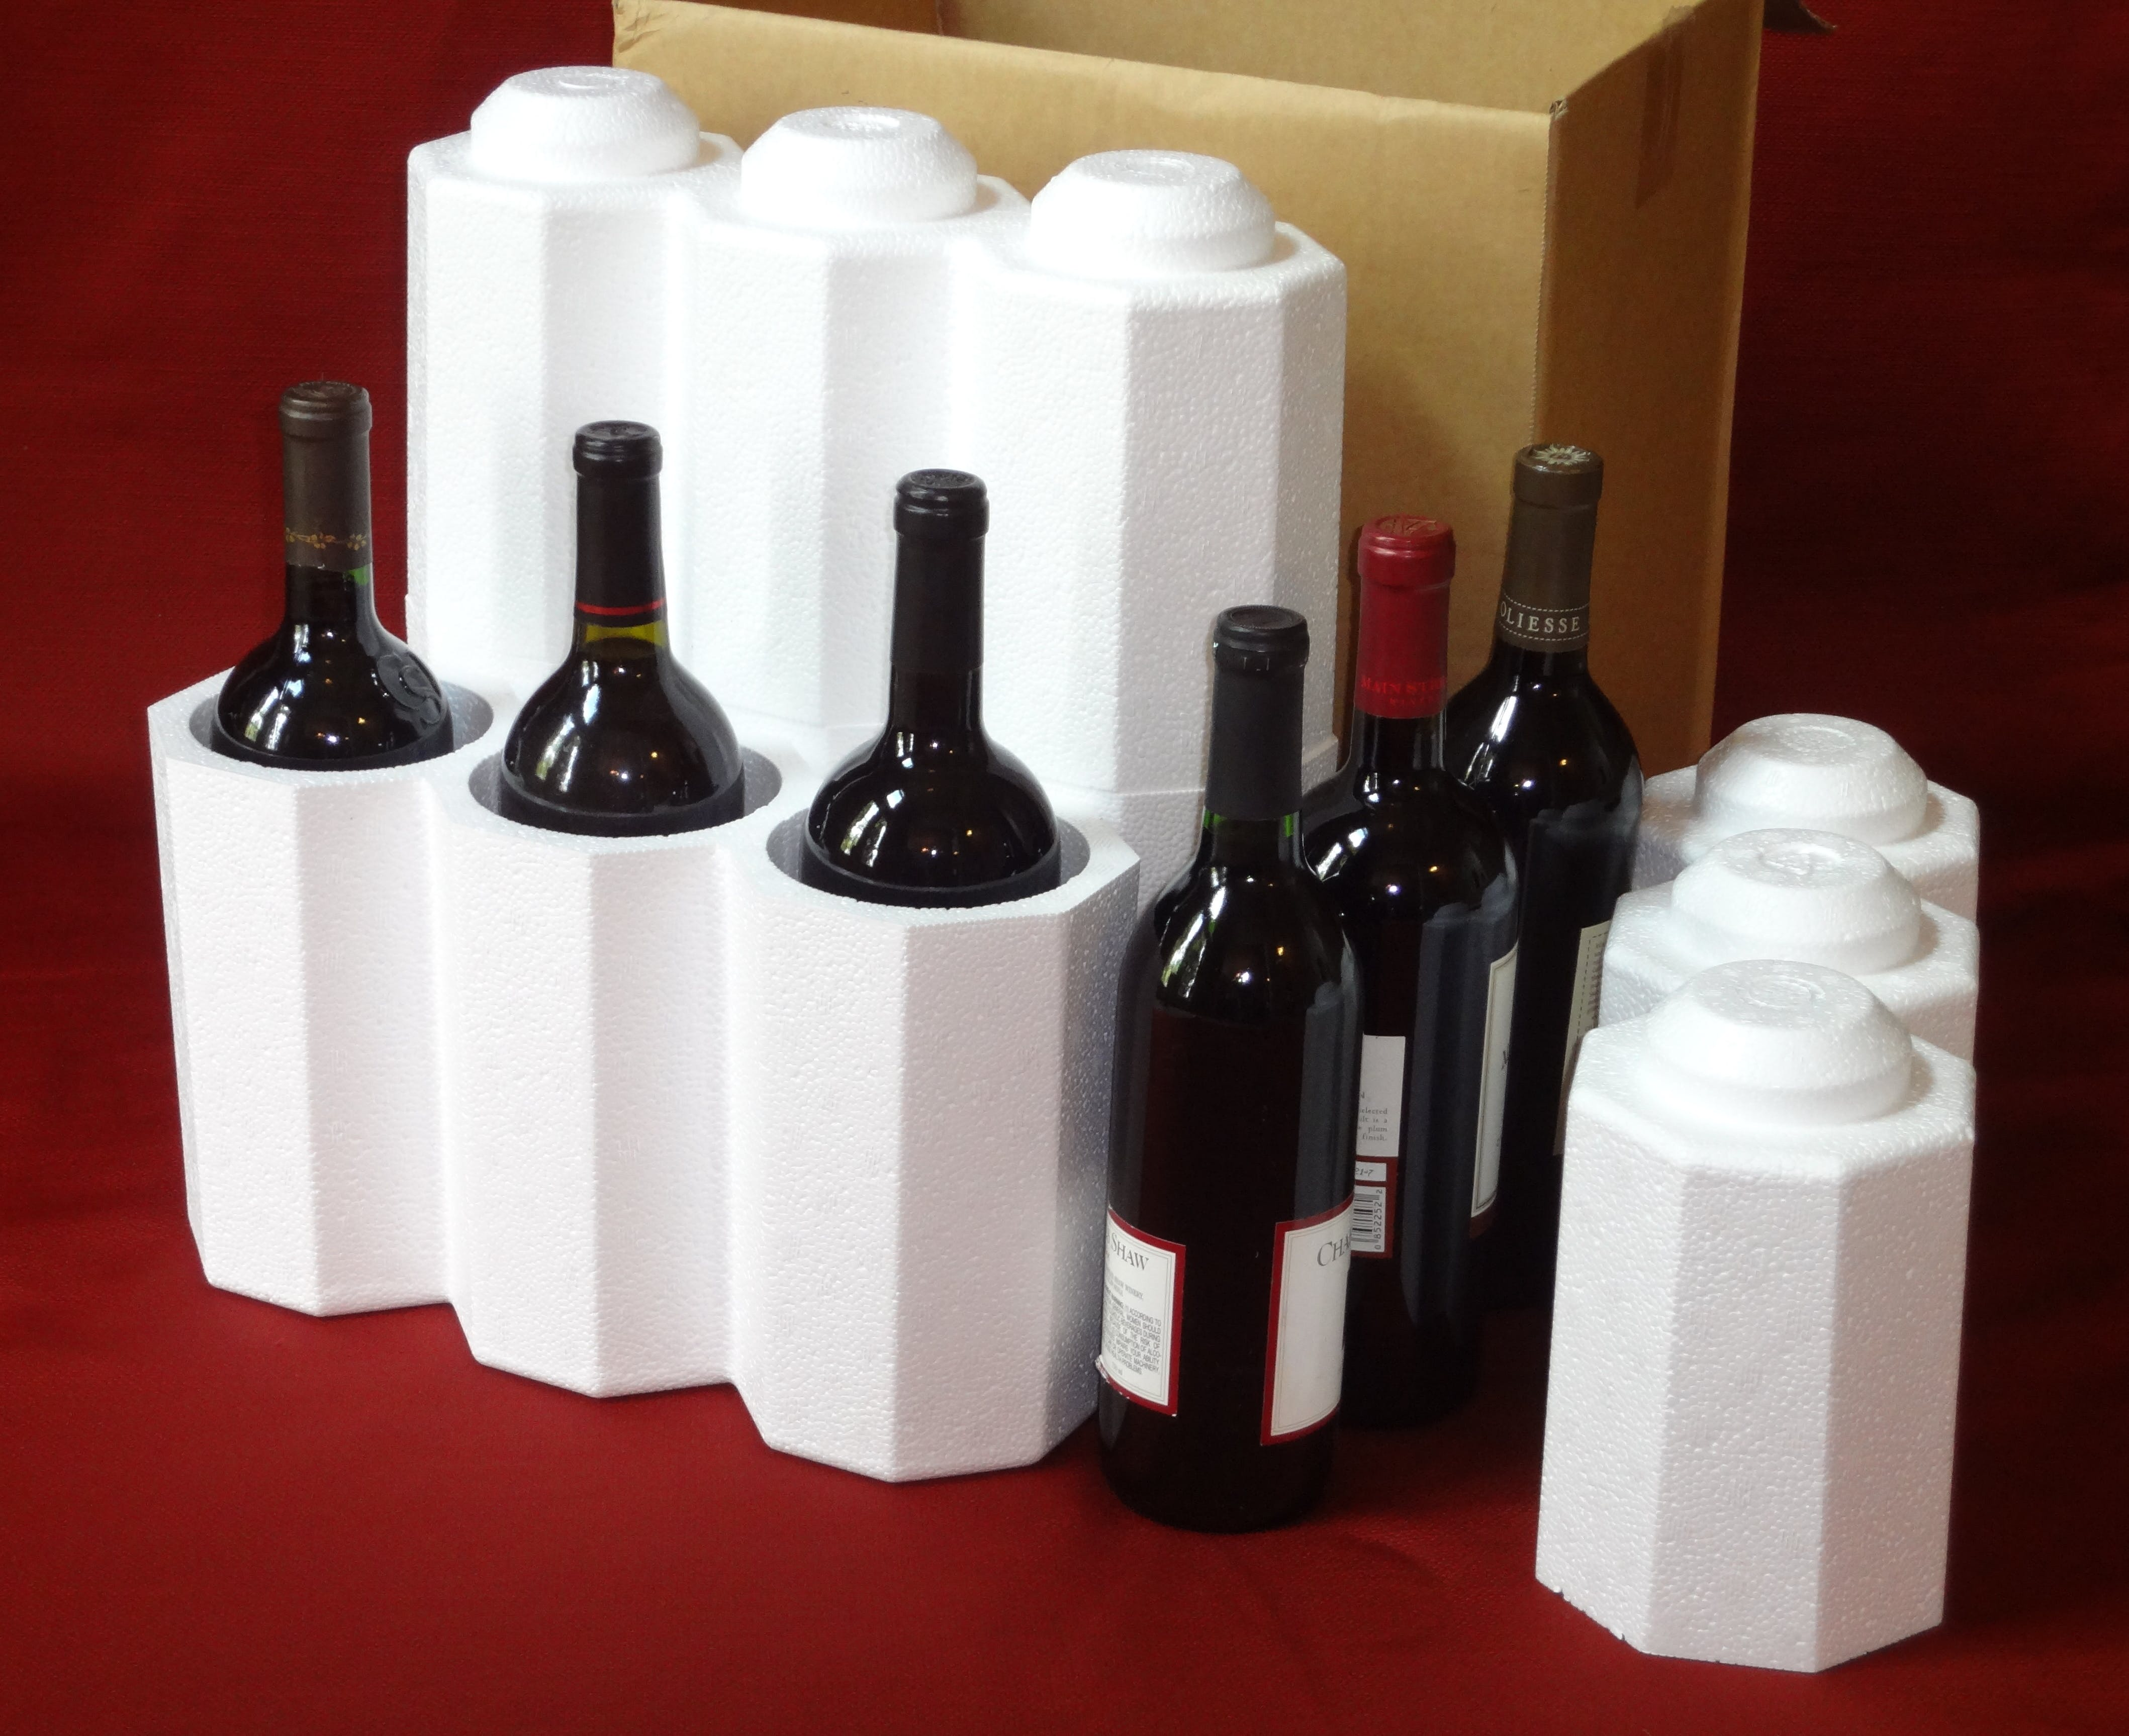 FOAM Wine Shippers with outer cartons Wine shipper sold by Gorilla Shipper